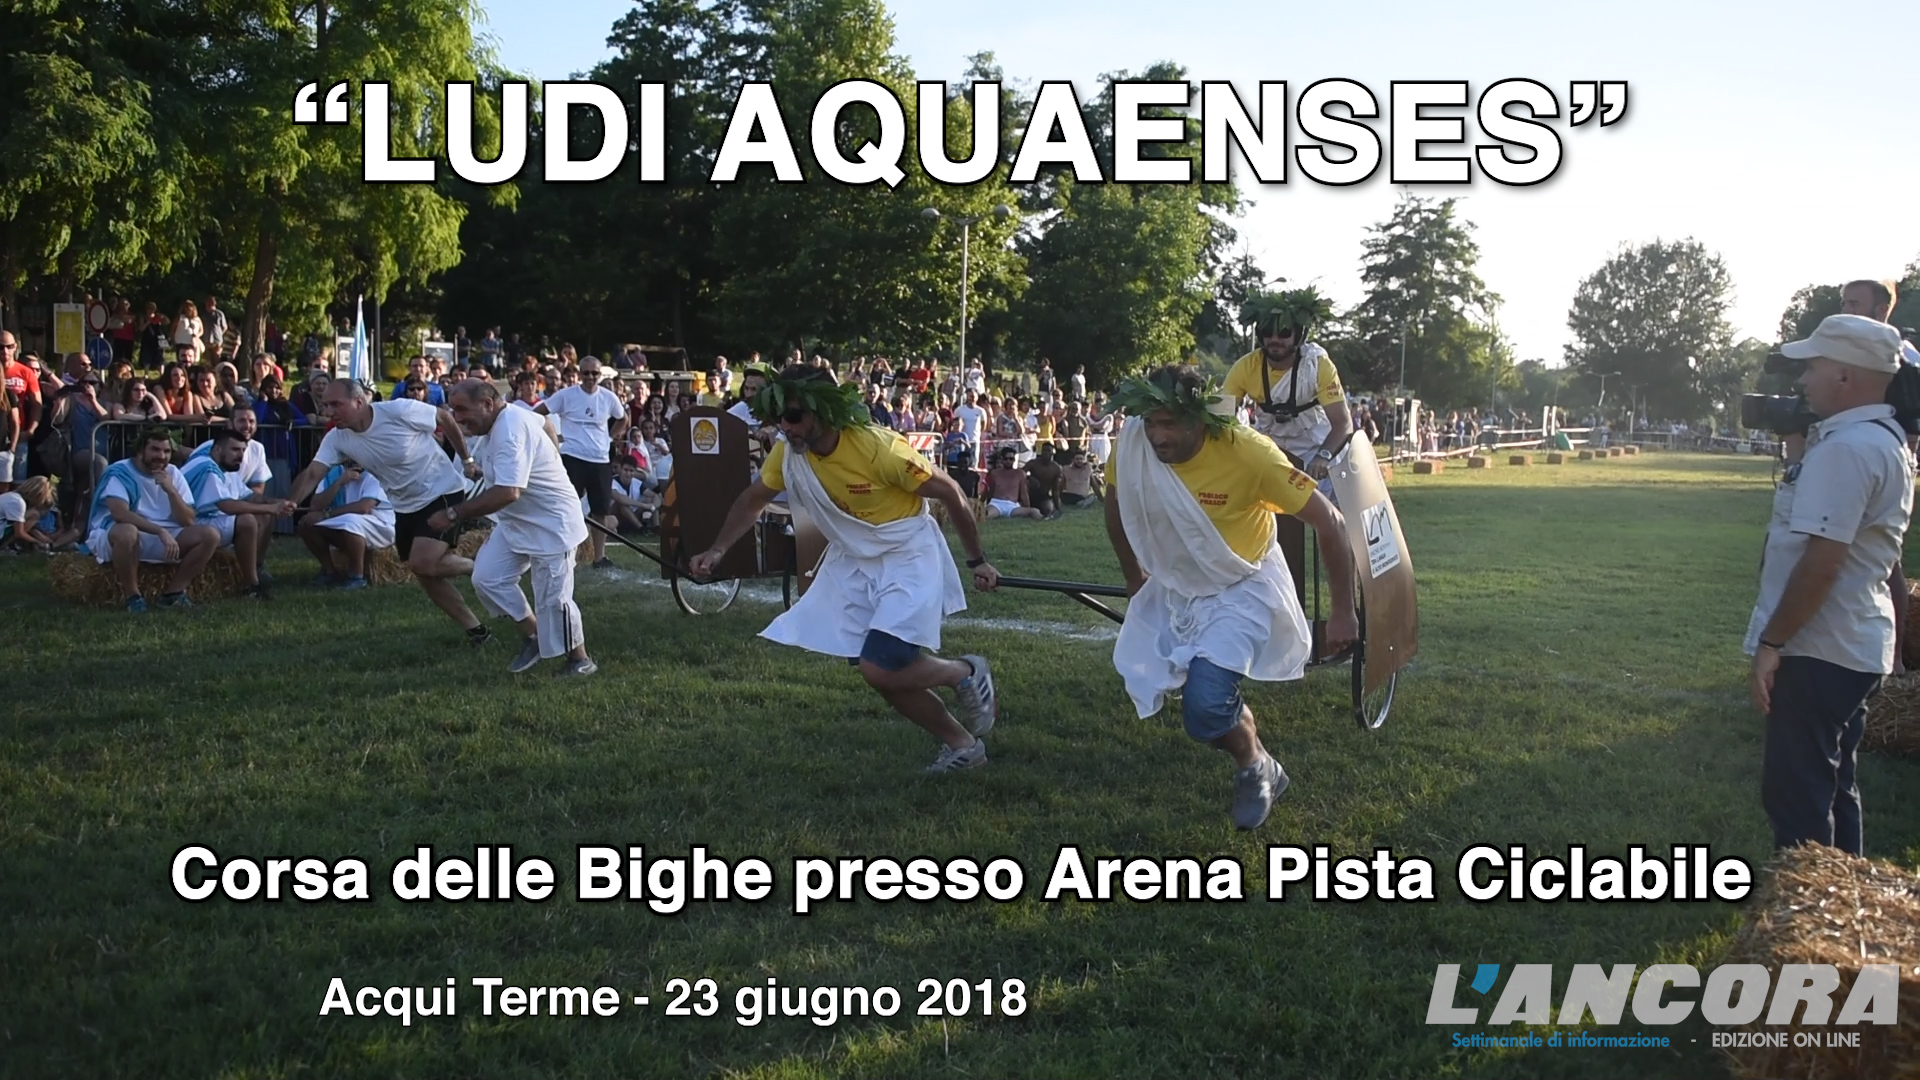 LUDI AQUAENSES - La Corsa delle Bighe (VIDEO)